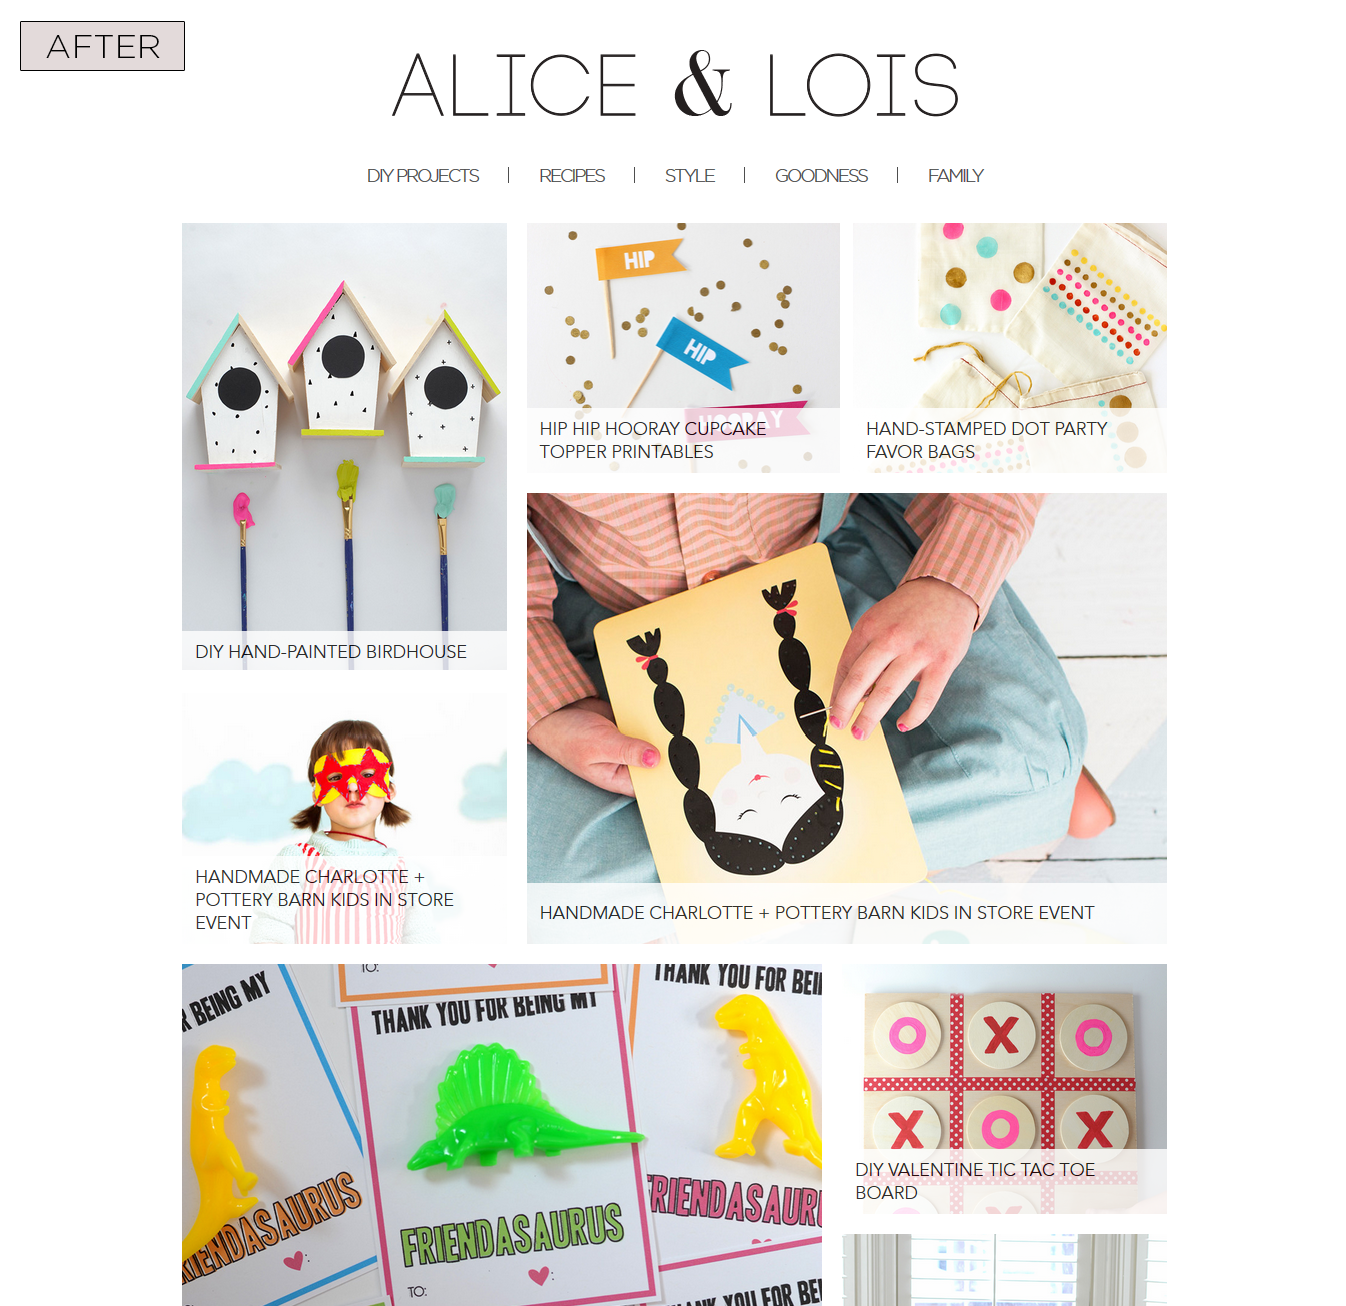 Alice & Lois Category Page - After